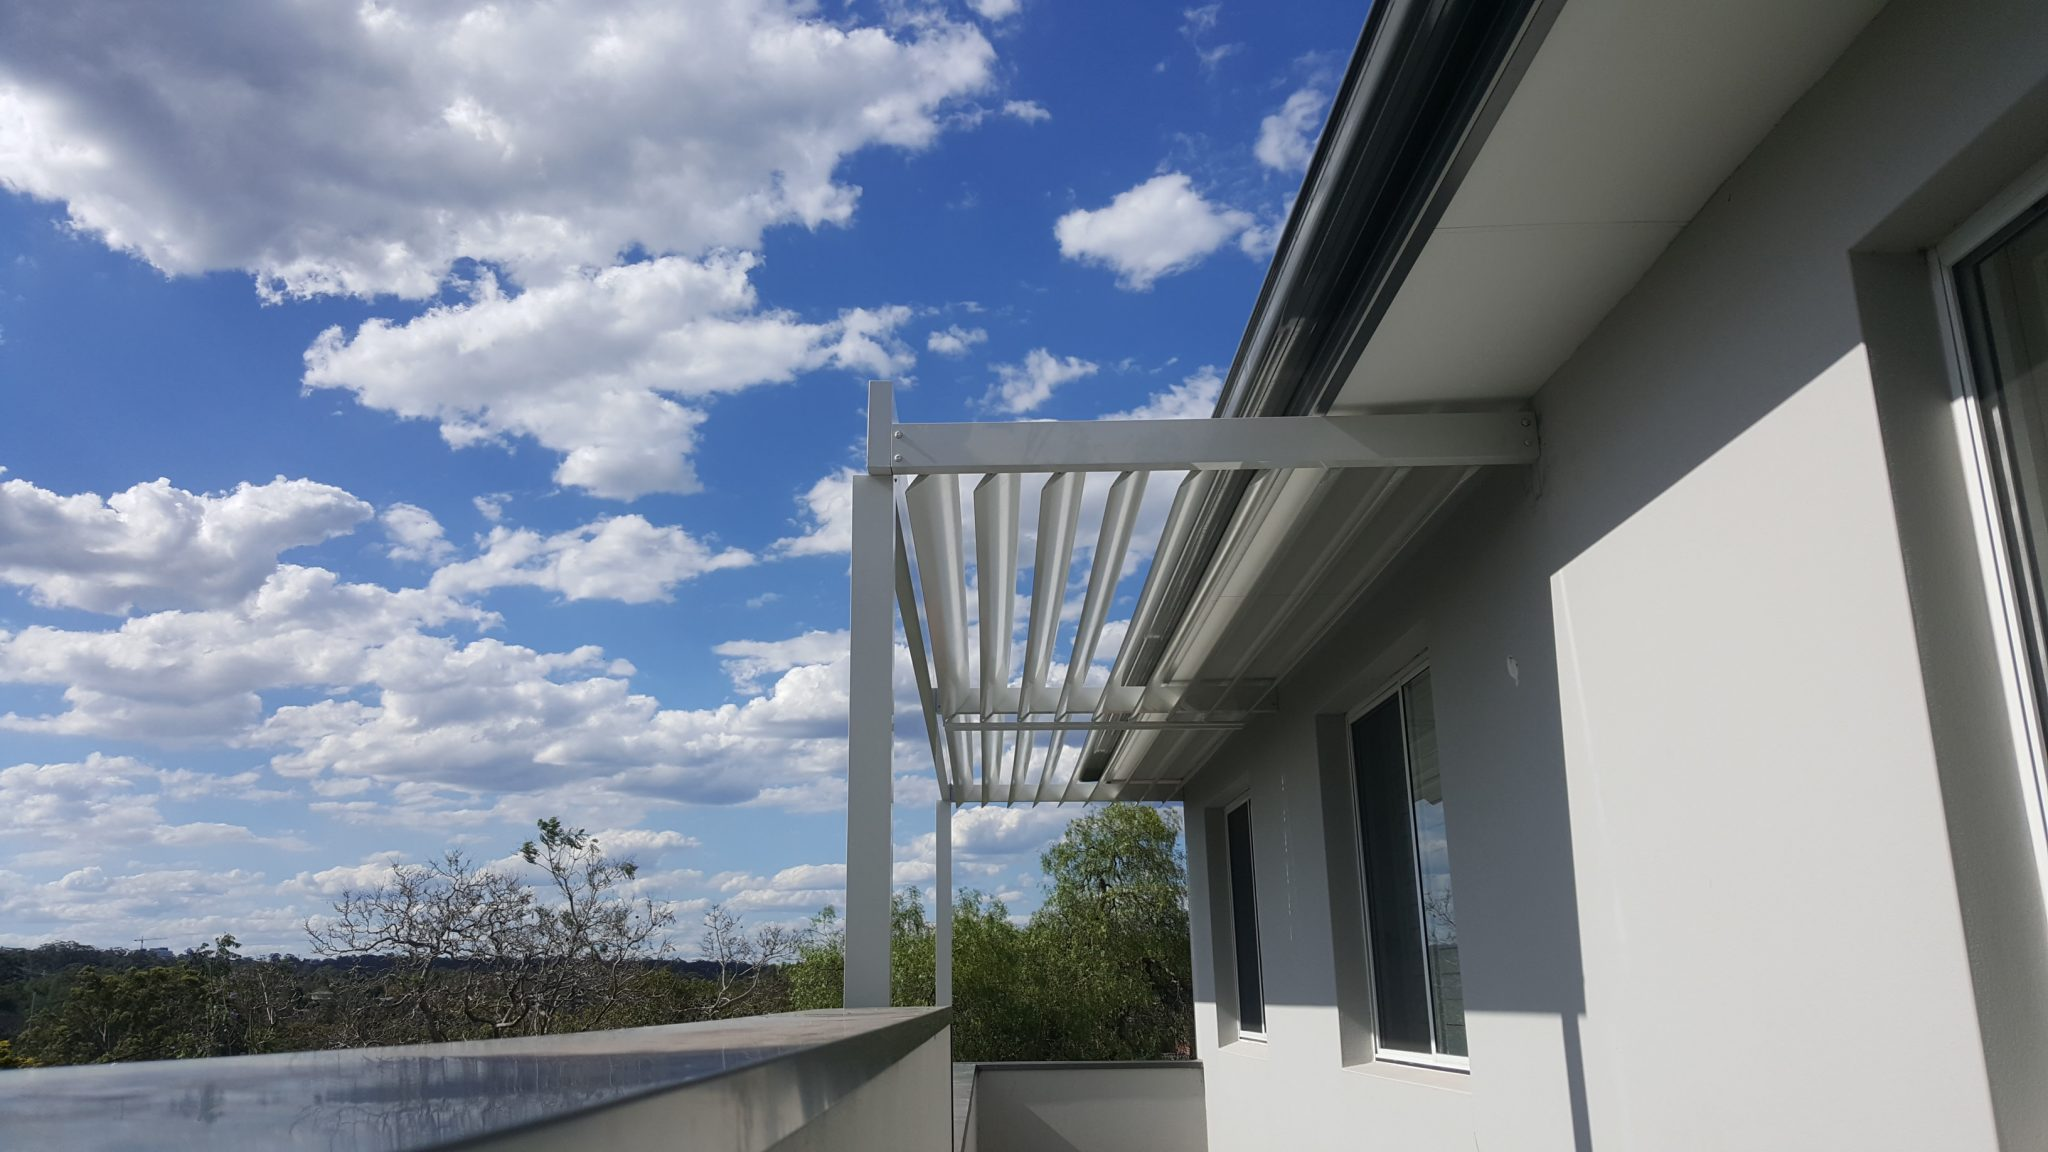 Louvre Roof Patio Cover With Adjustable 160mm Blades In A